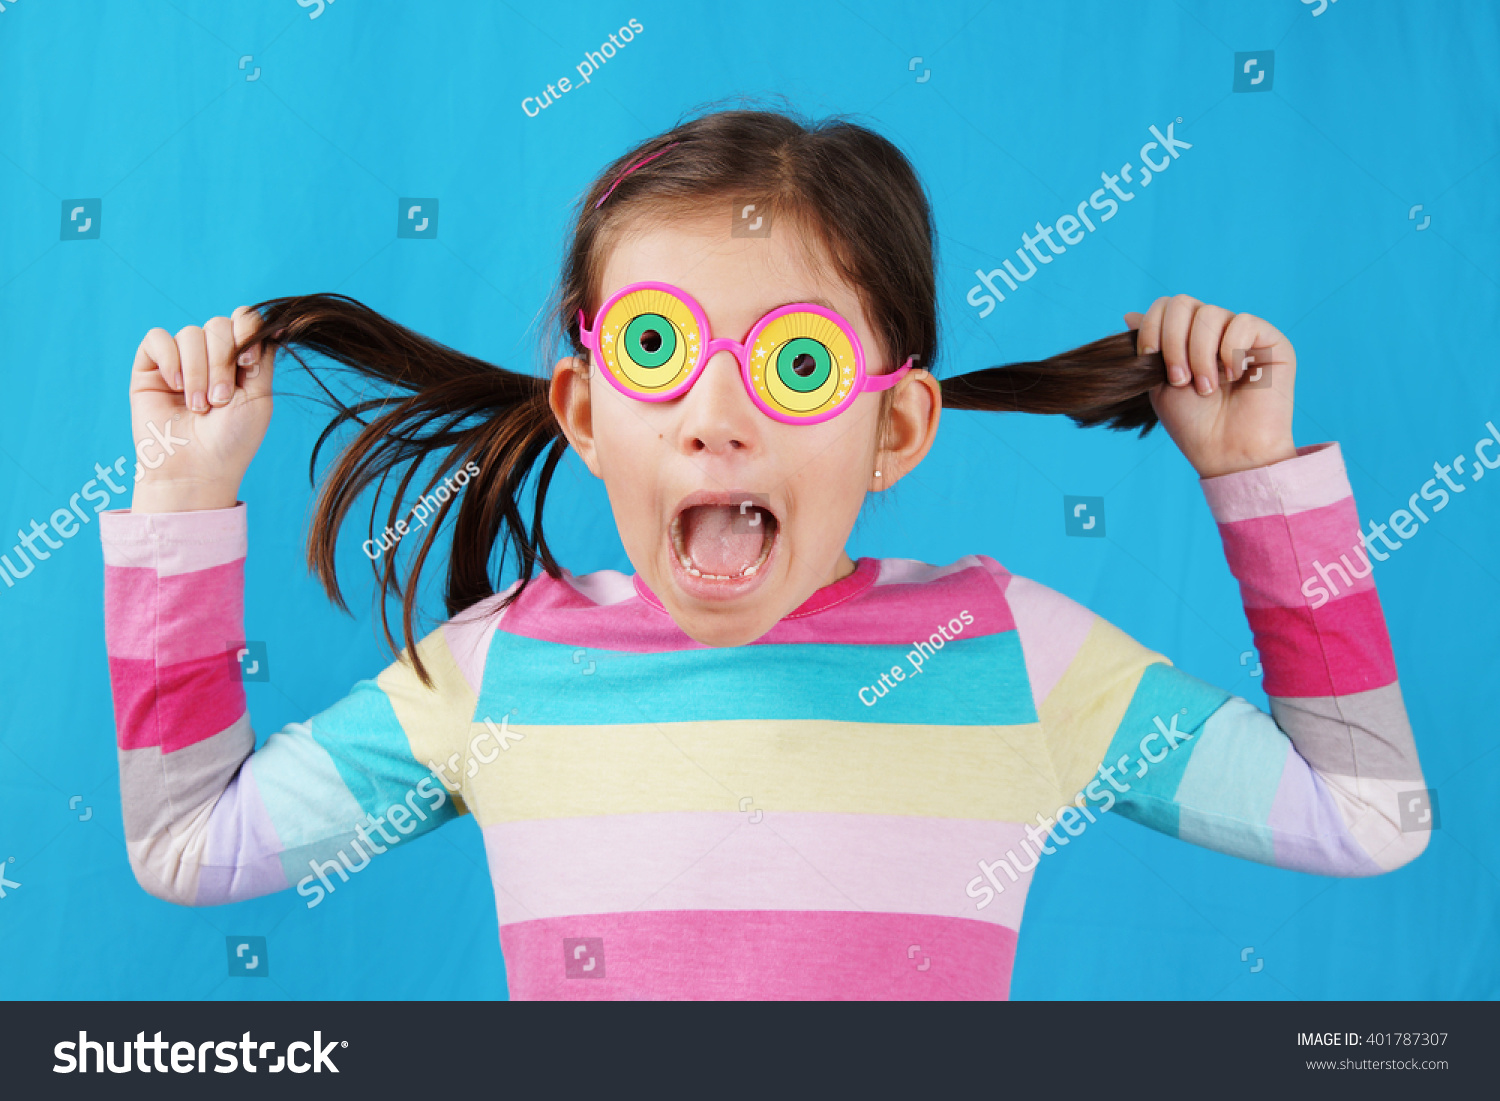 Grimace face clip art stock photo woman pulls a face in upset - Little Girl Making Face With Funny Glasses